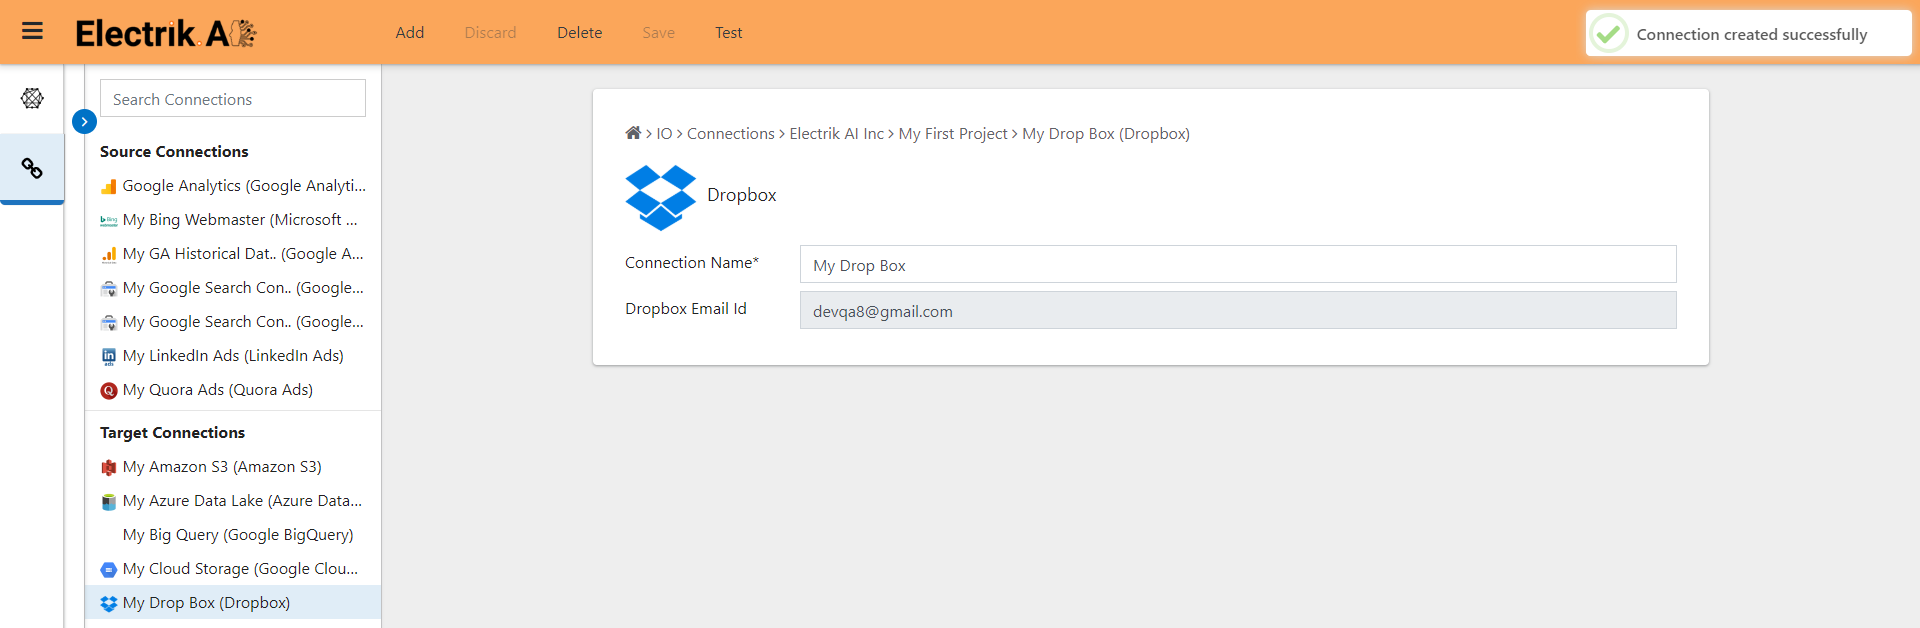 Successfully created a Dropbox connection in Electrik.AI